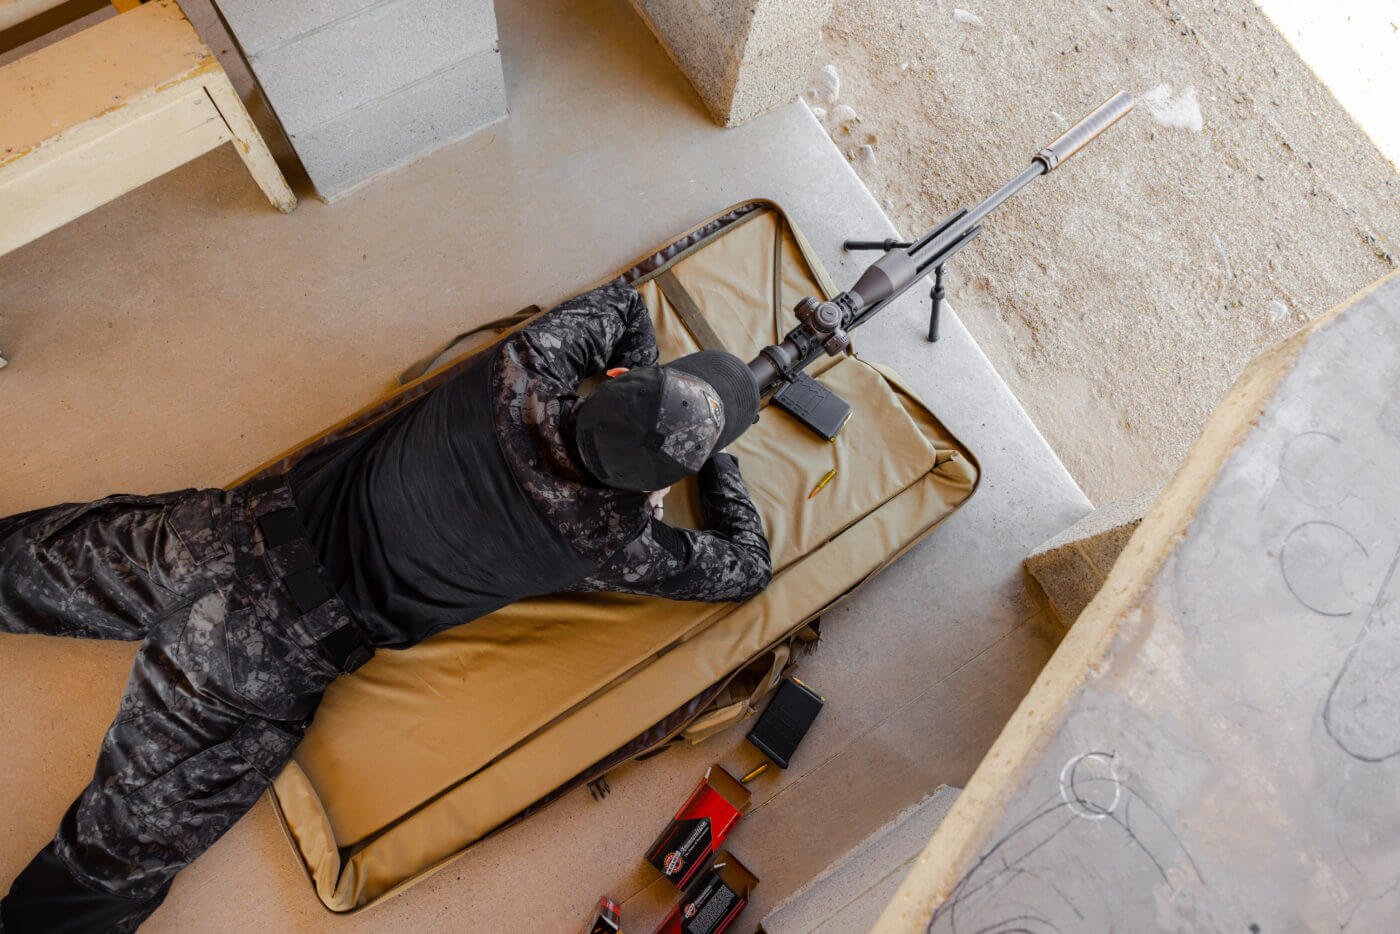 Shooting rifle from prone position with cold bore